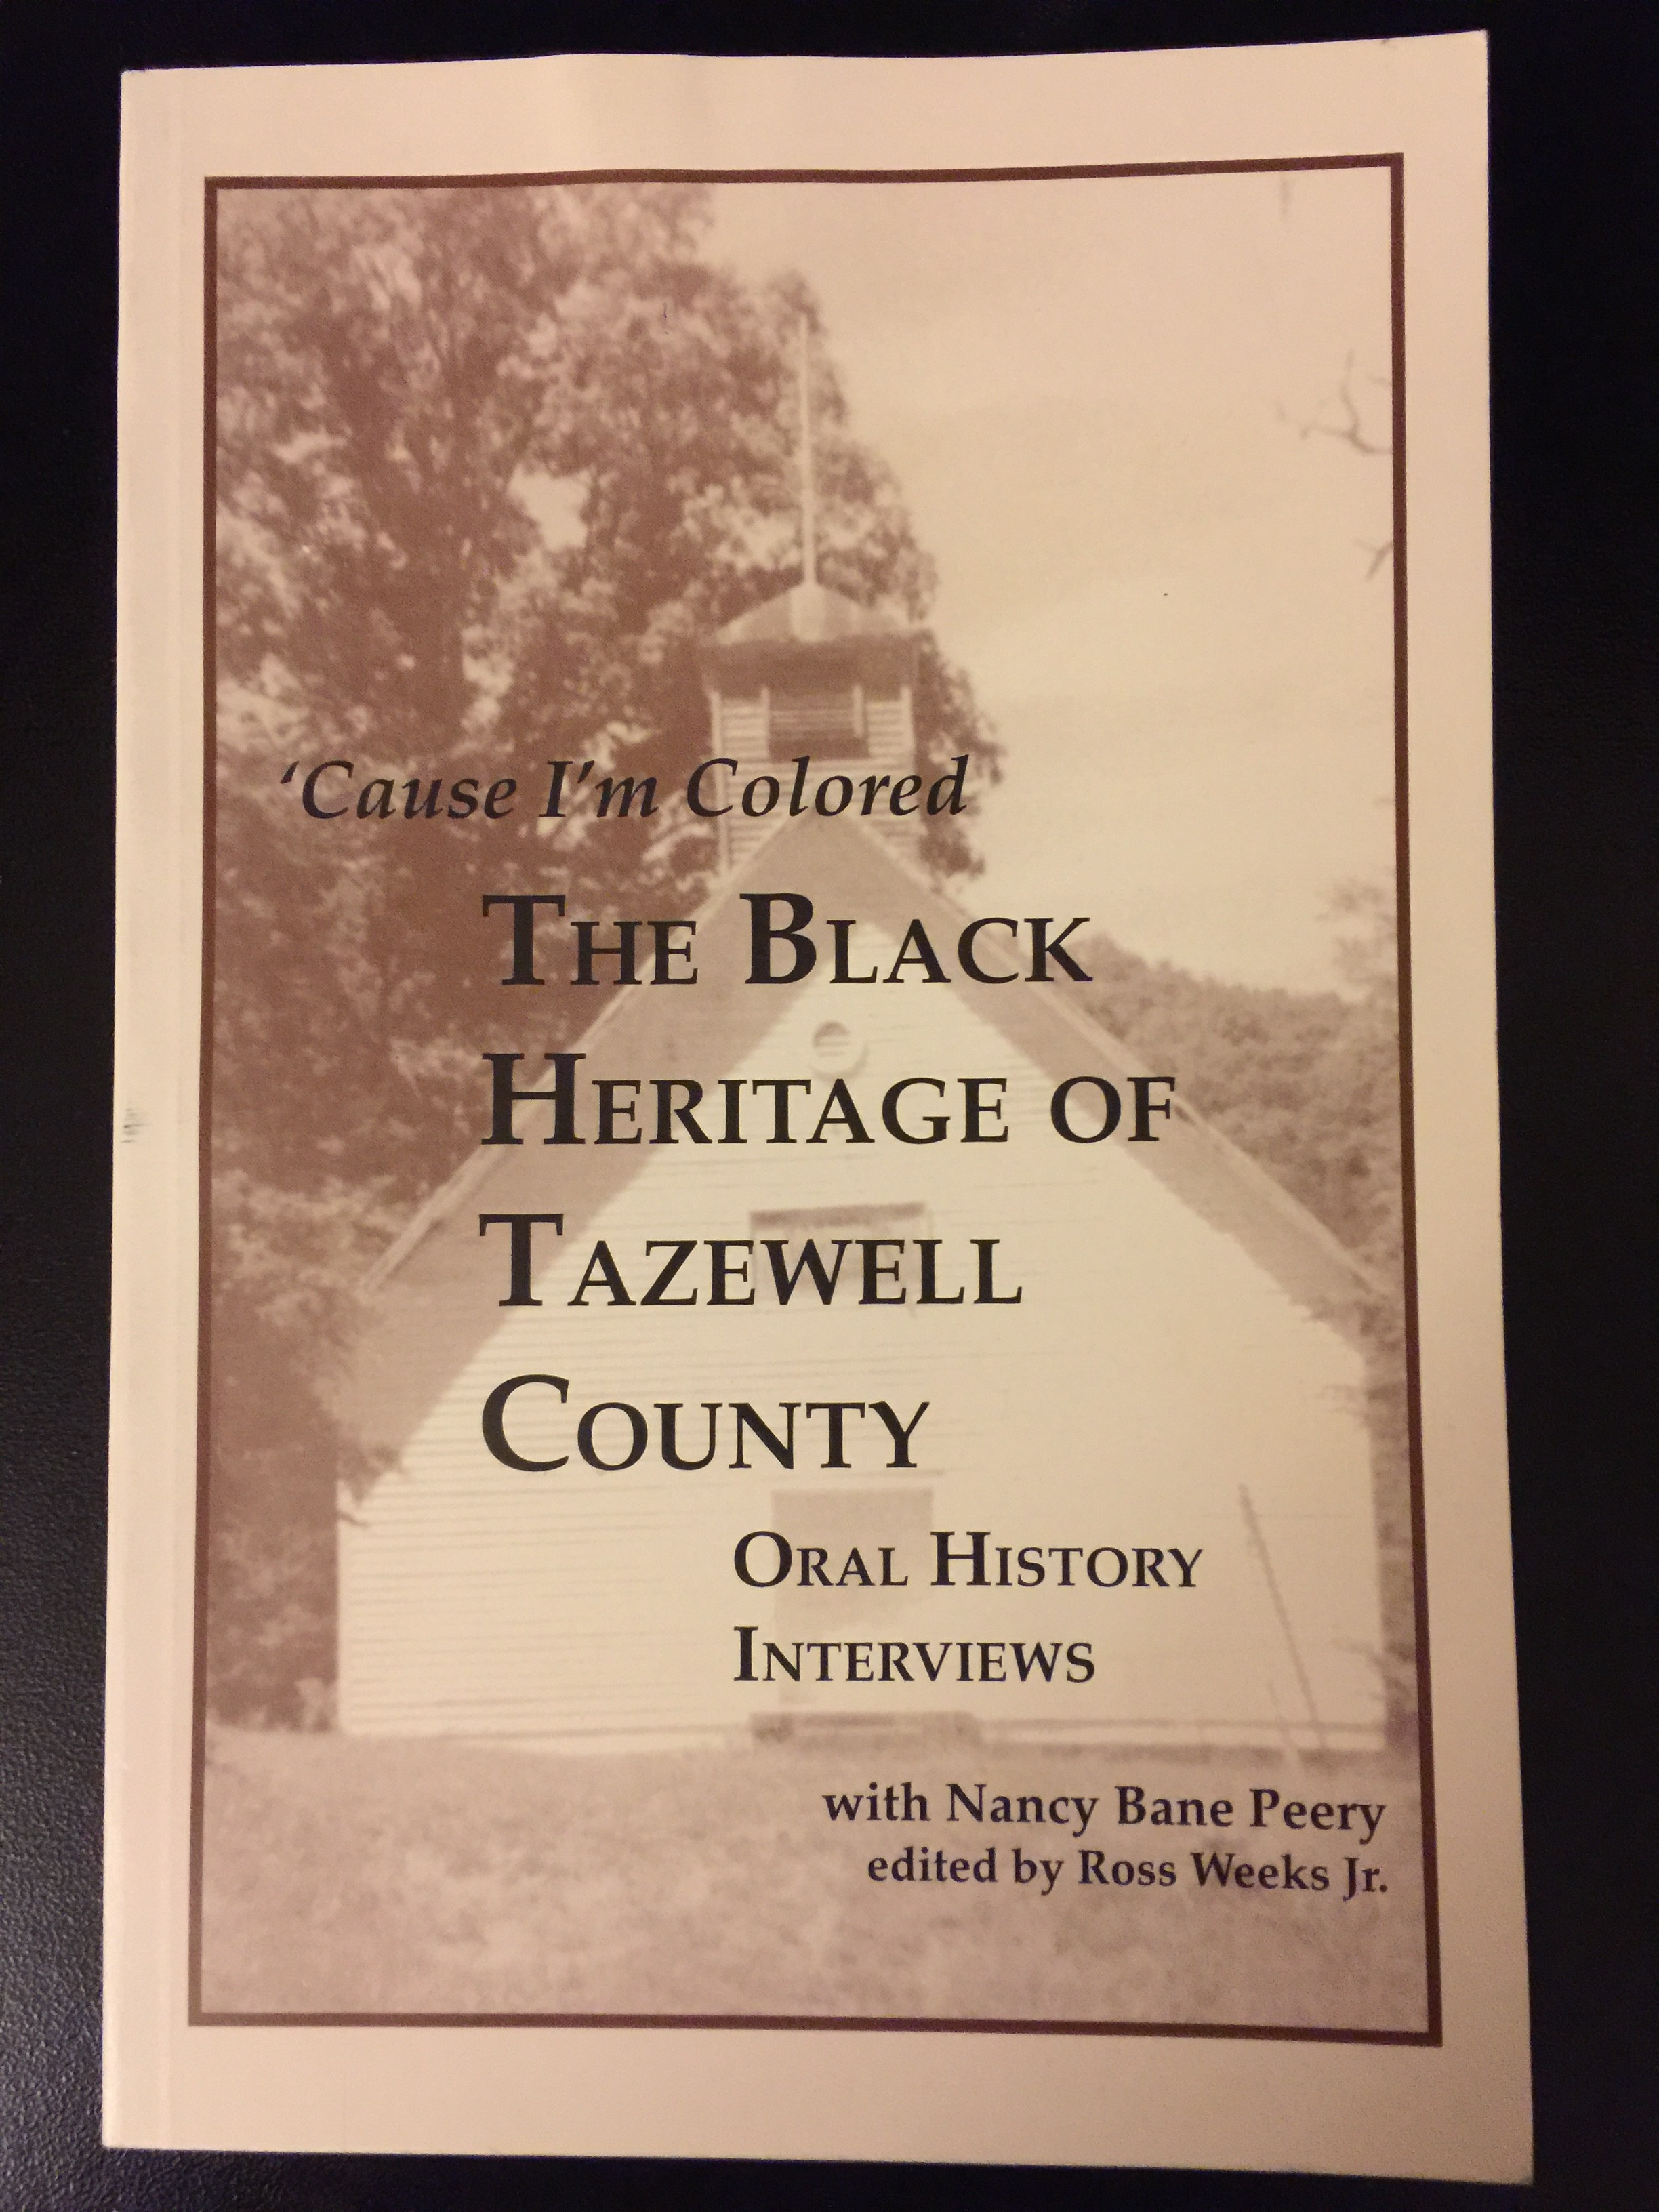 black singles in tazewell county Black or african american: 399: families vs singles zip code 24605 is in the tazewell county public schools.